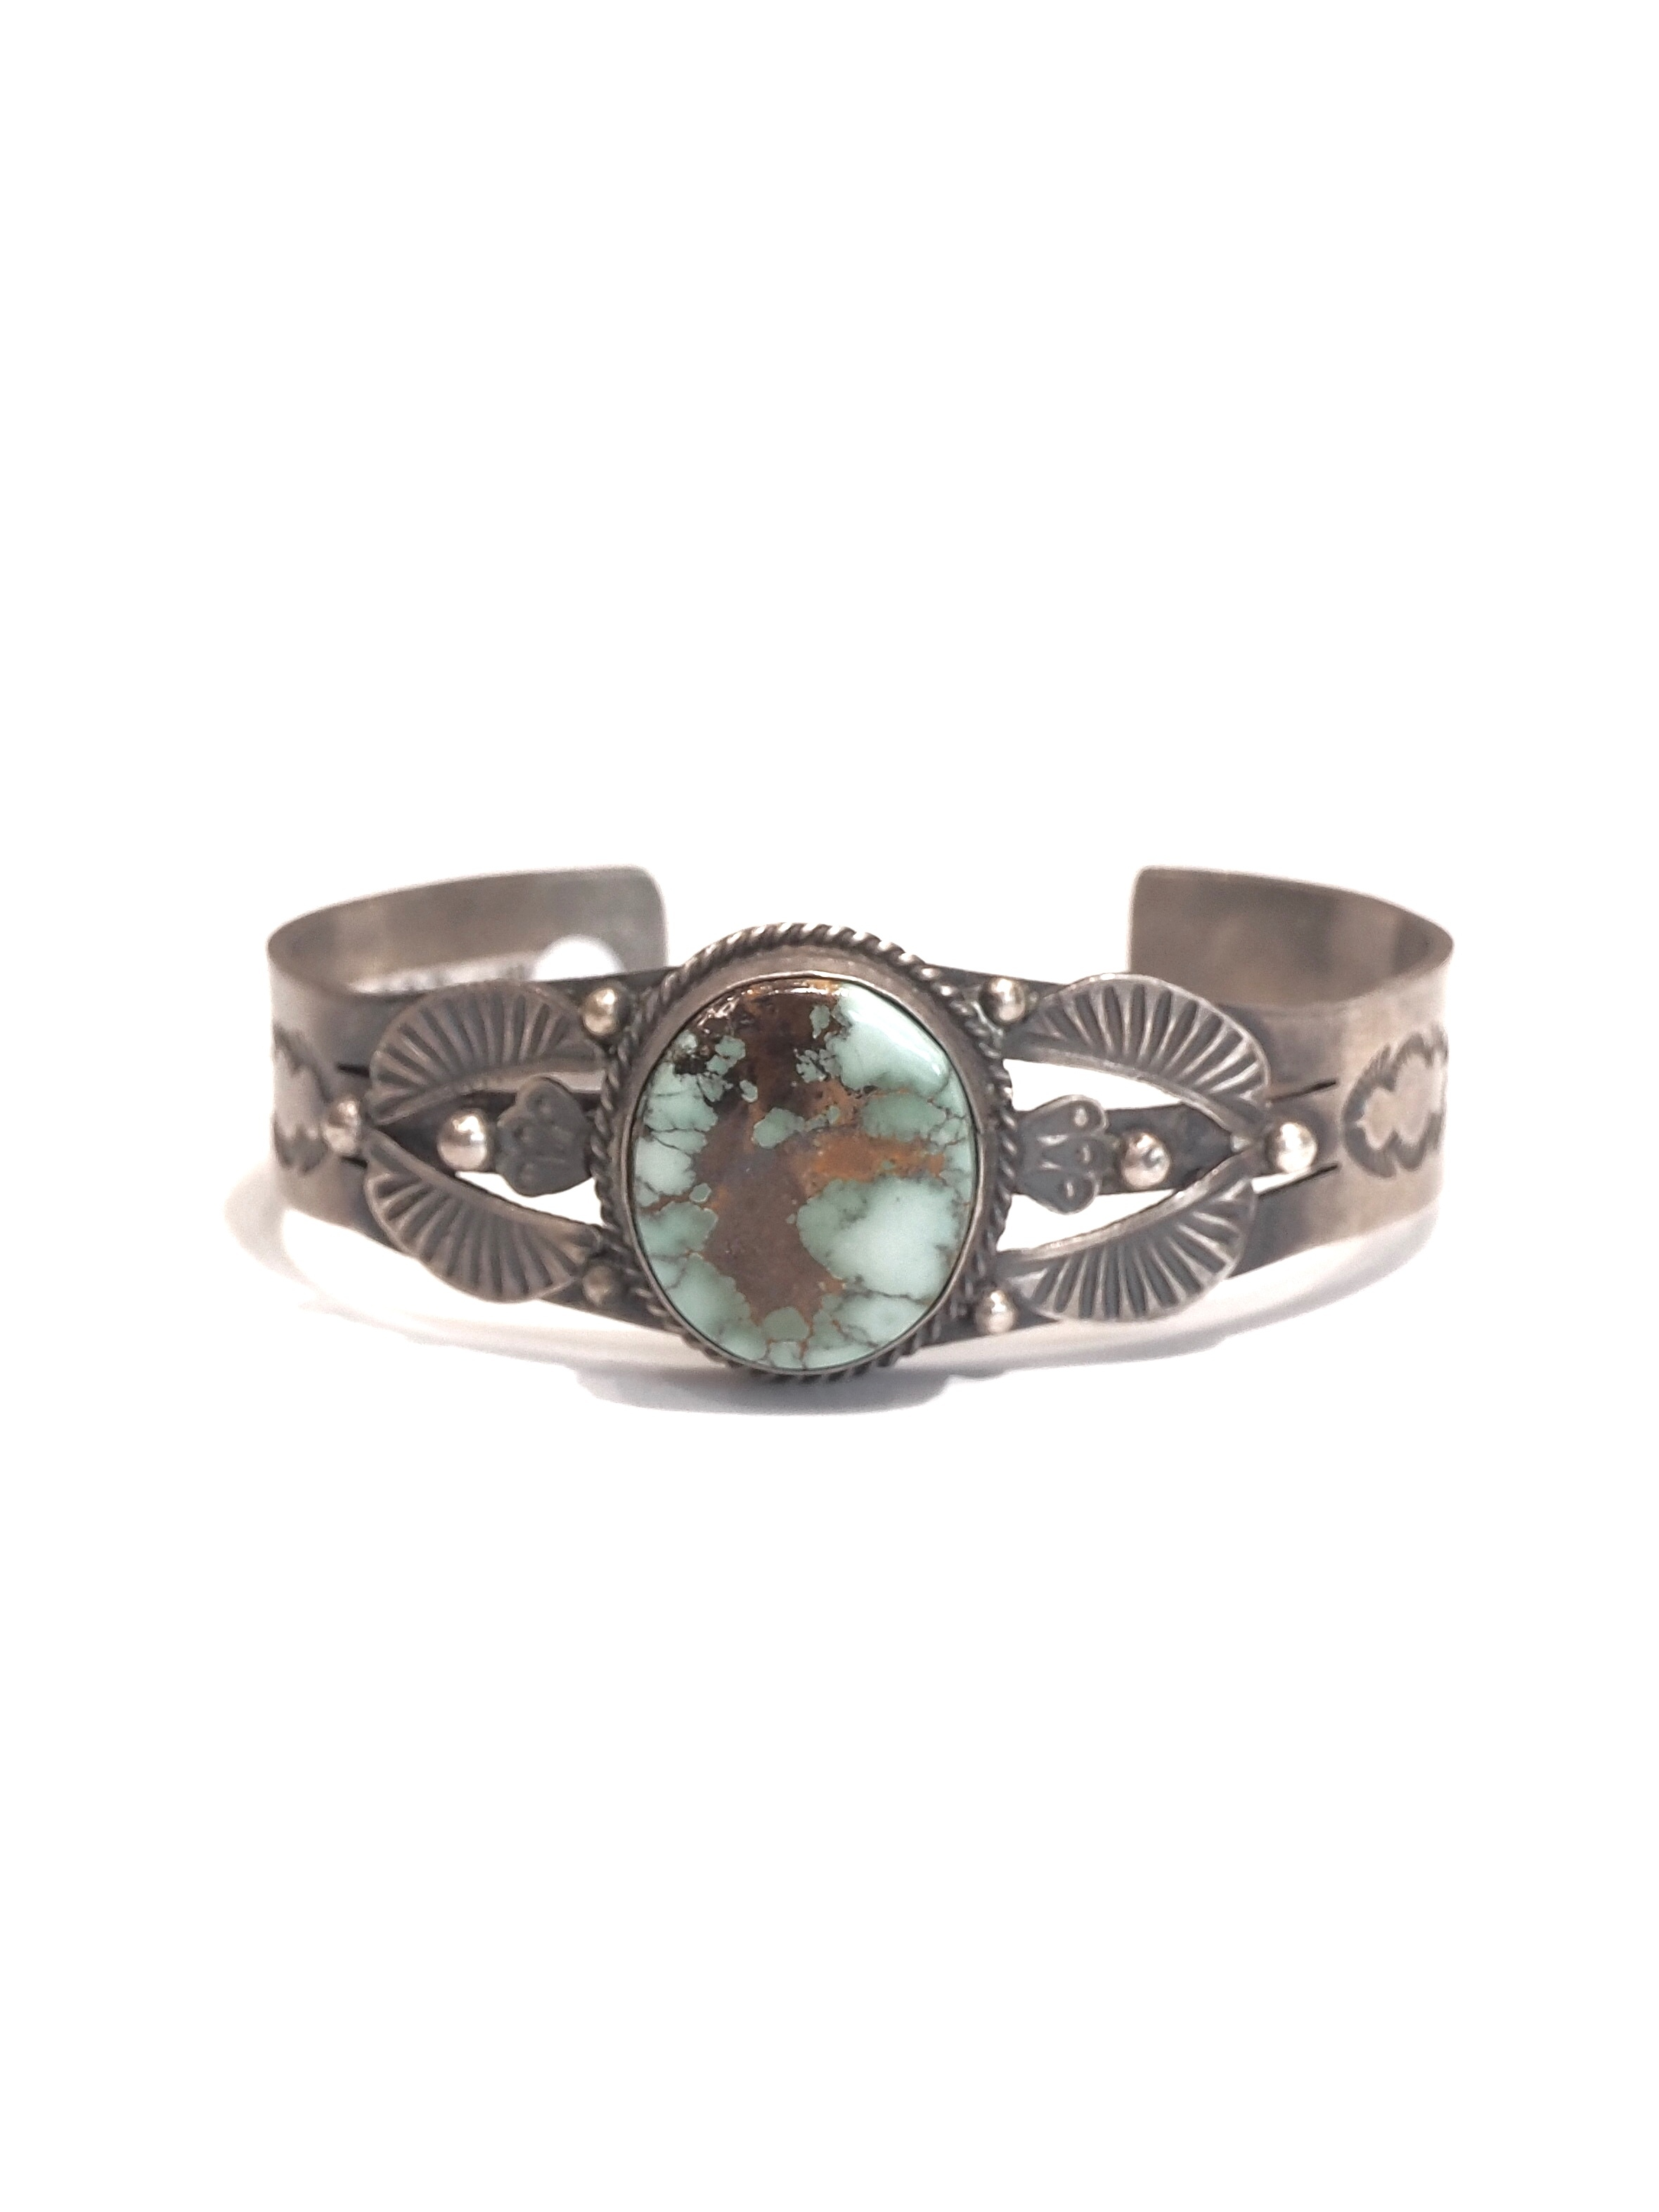 【navajo bangle】TURQUOISE